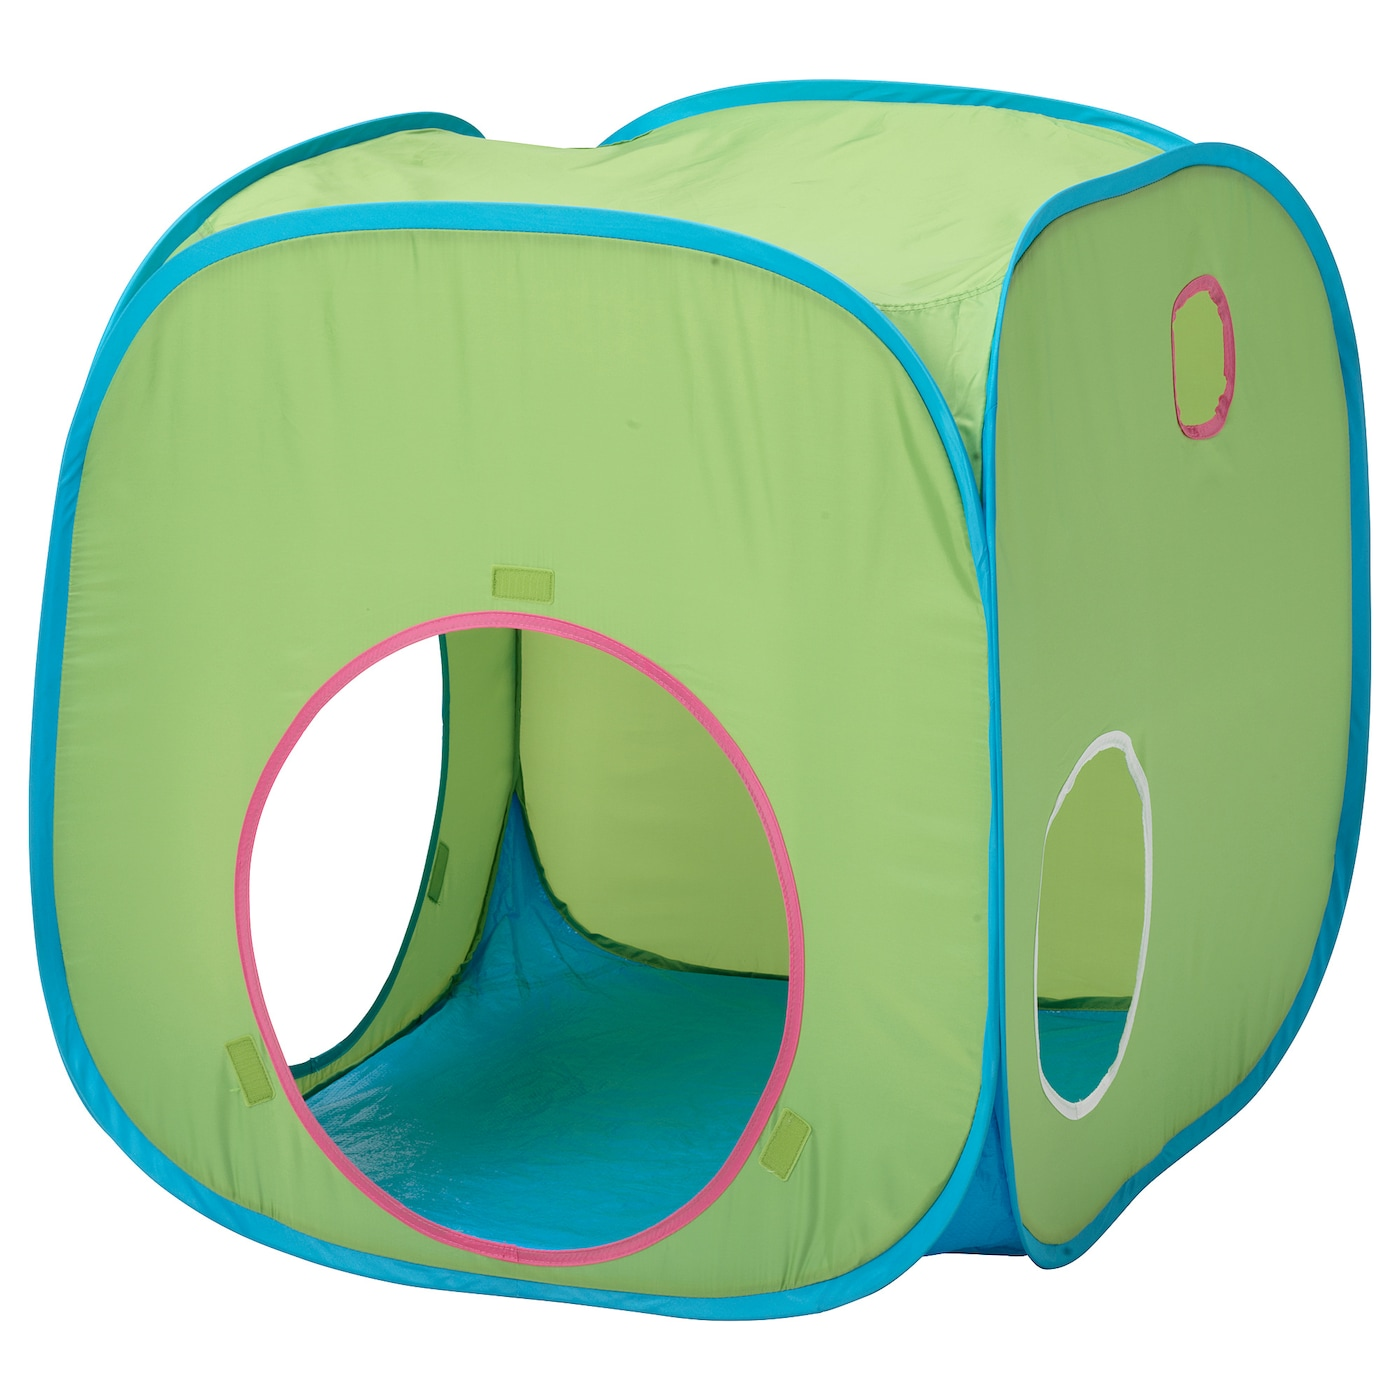 IKEA BUSA children's tent Easy to move or take down when not in use.